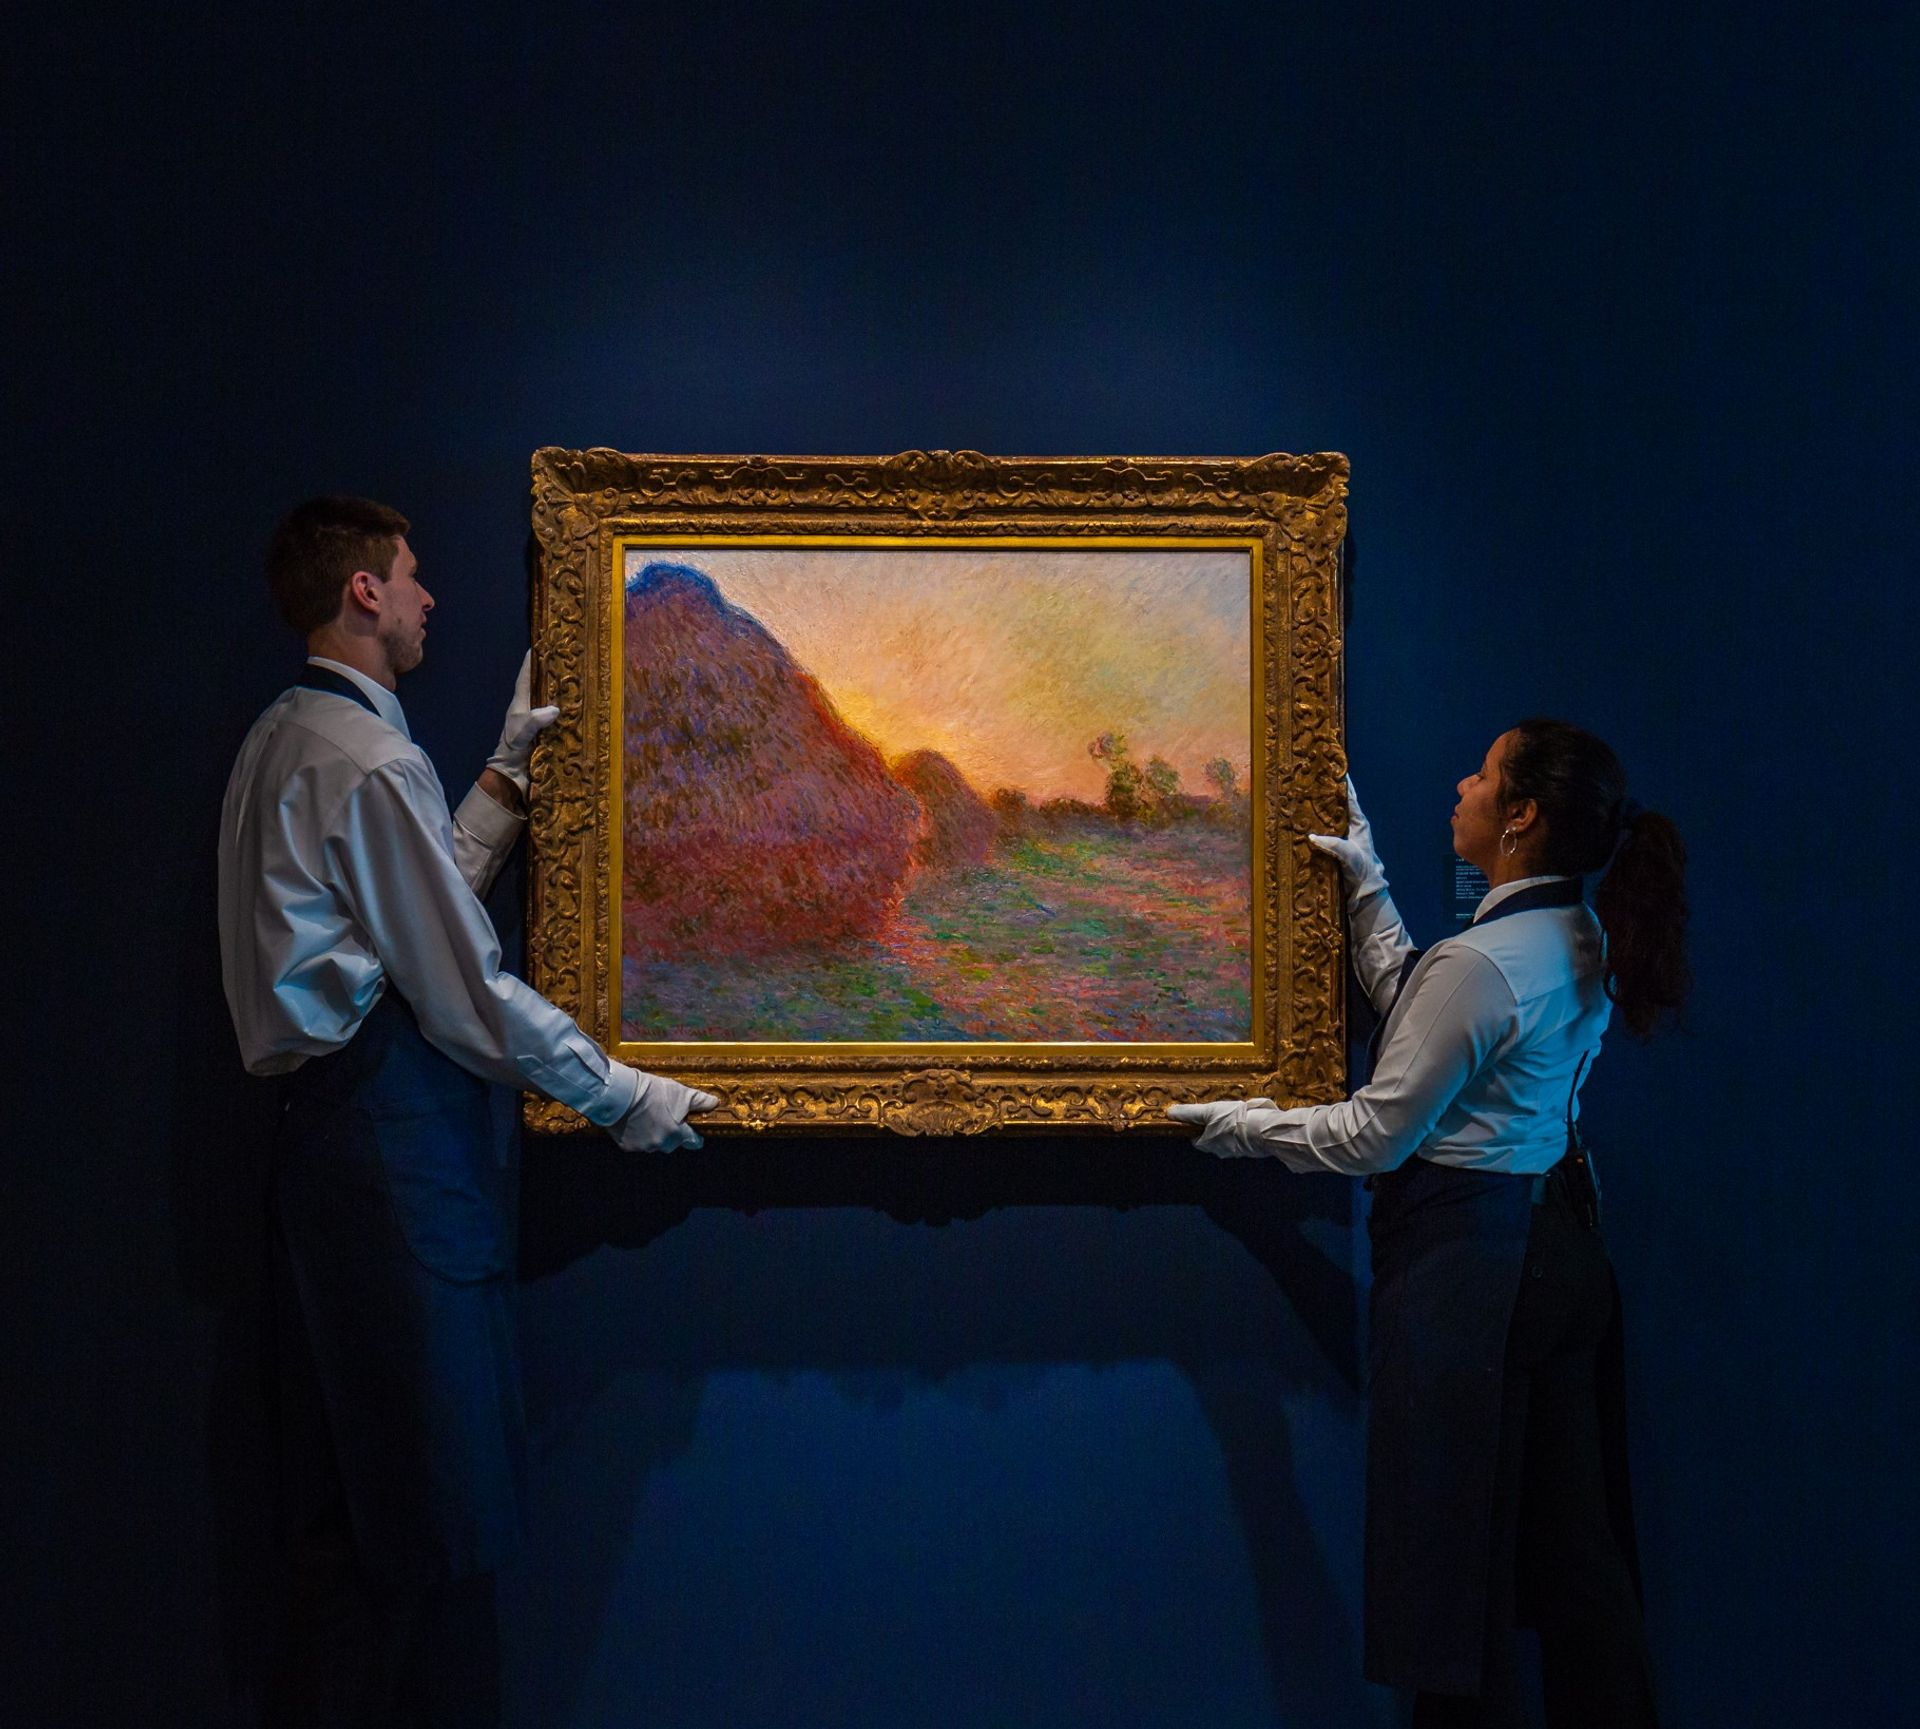 Monet's Meules (1890) set a new world record for the Impressionist artist when it sold for $110m at Sotheby's in New York Sotheby's